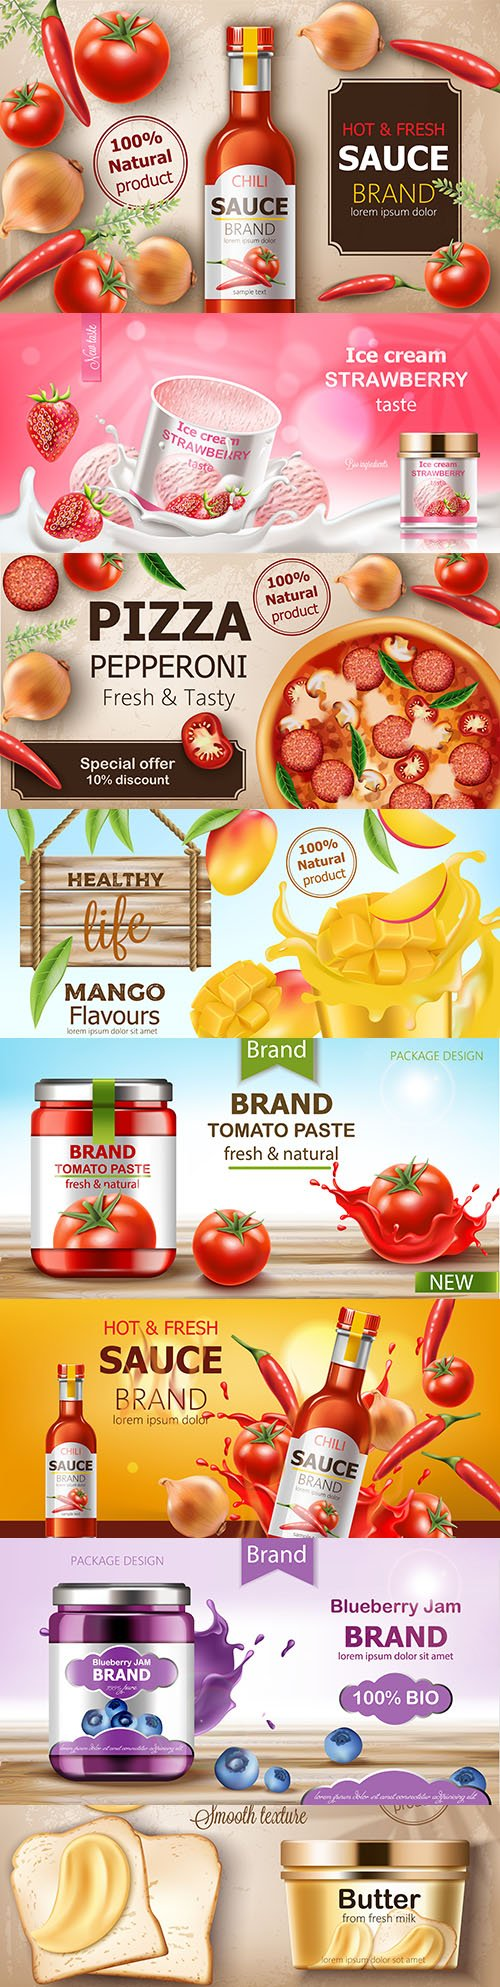 Design advertising 3d illustrations of desserts and sauces